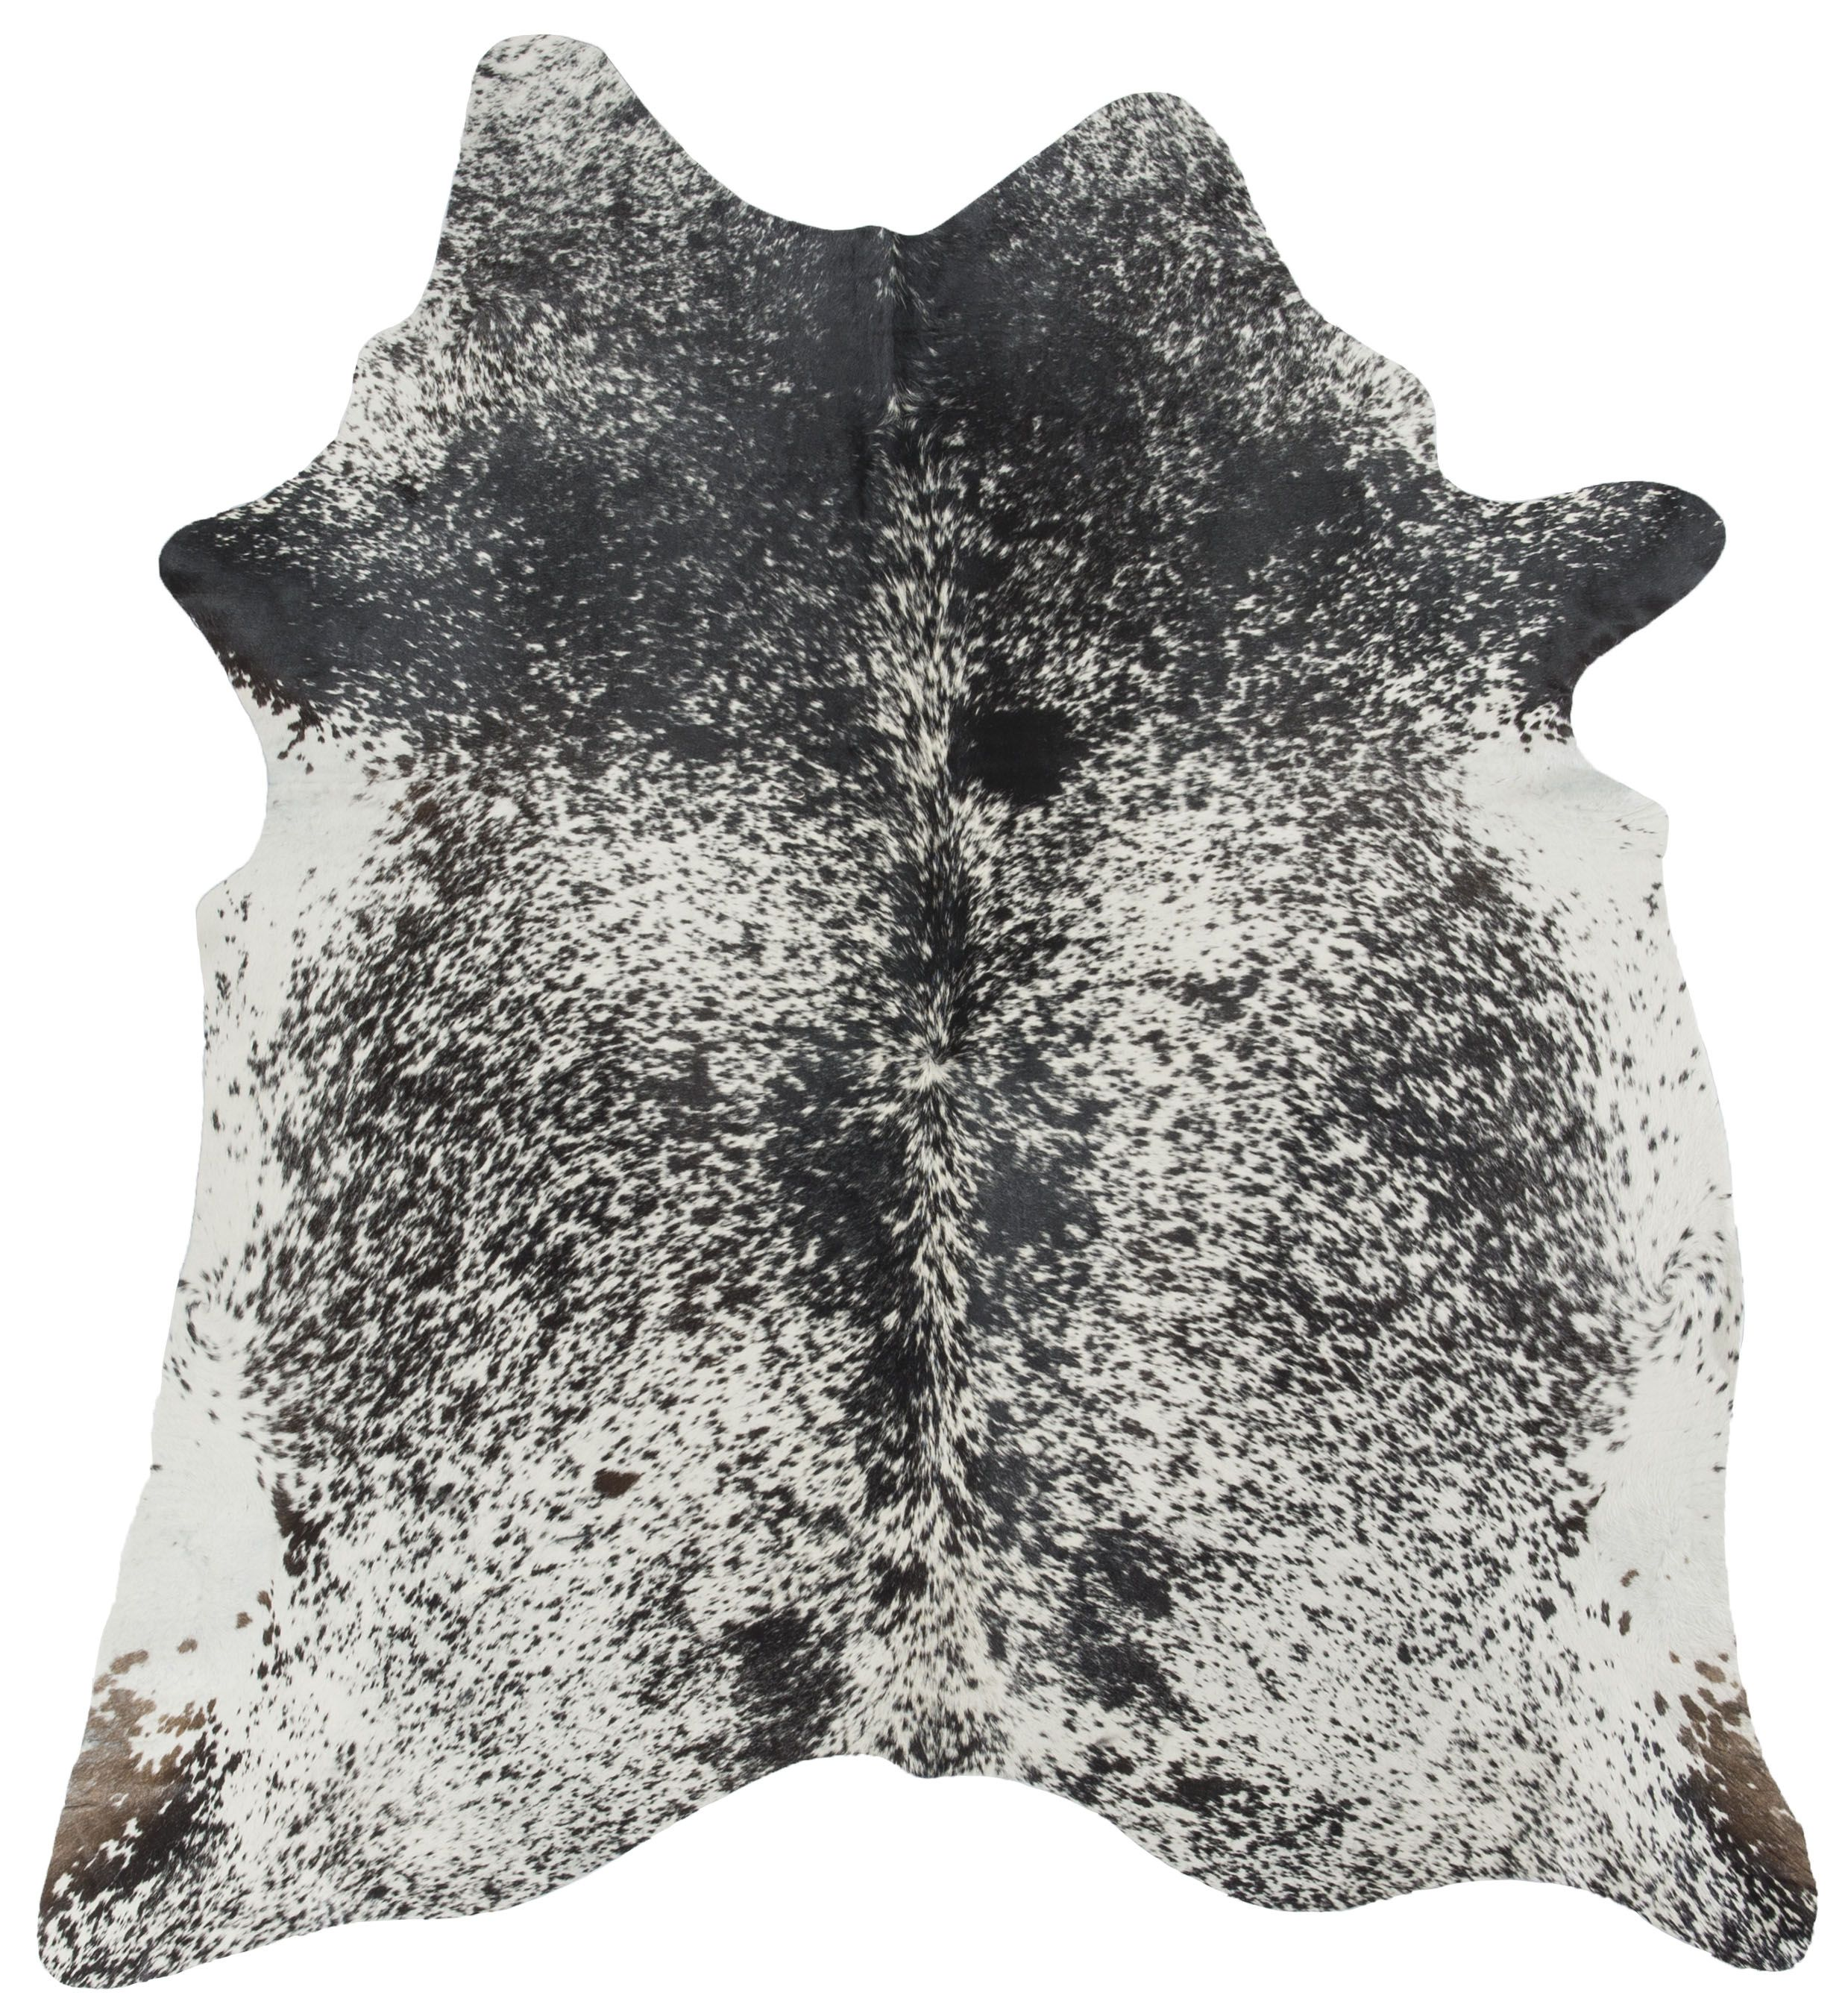 All natural Black Speckle hide, one of many naturals and numerous colors #cowhide